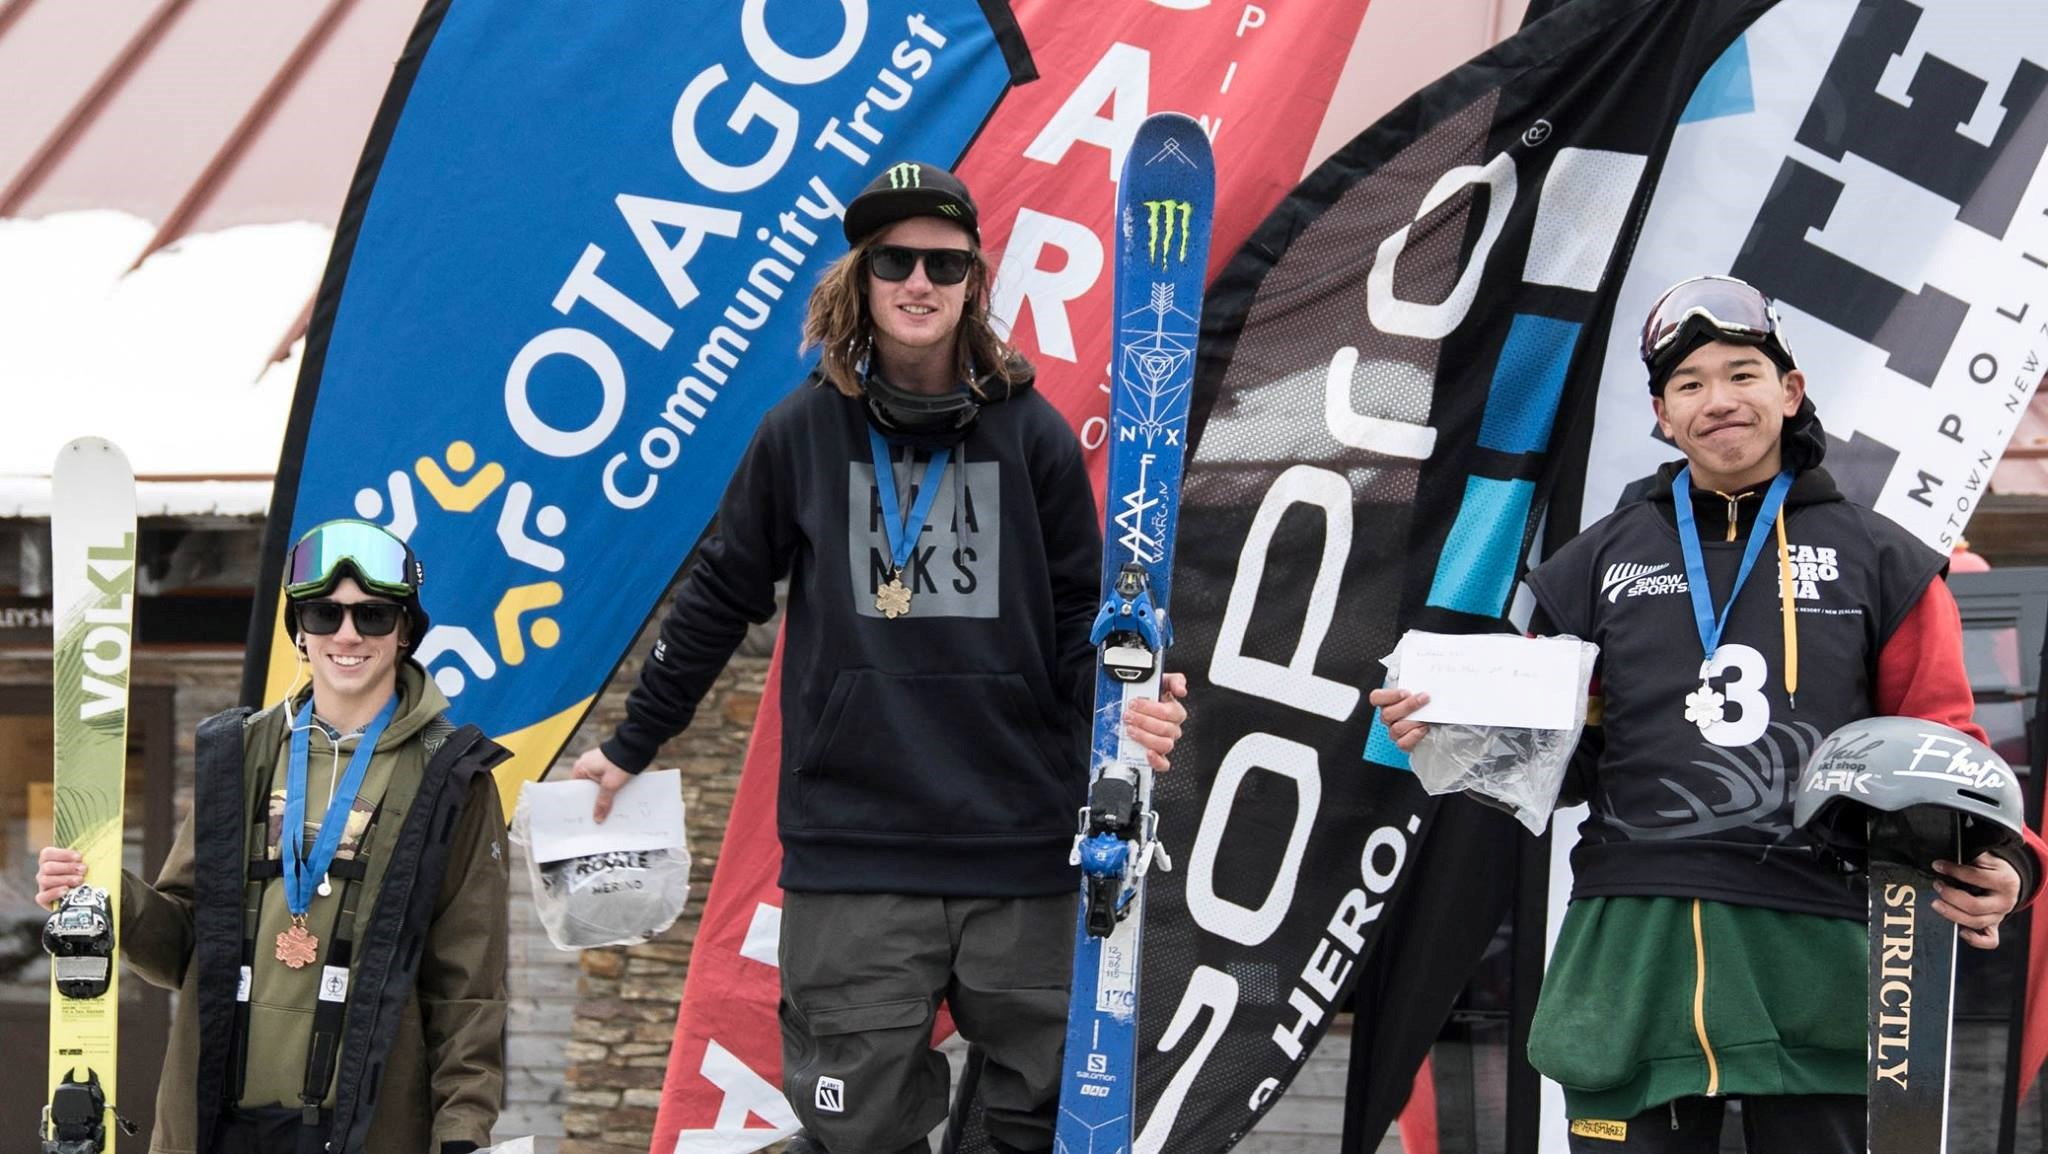 James Woodsy Woods at Cardrona Games